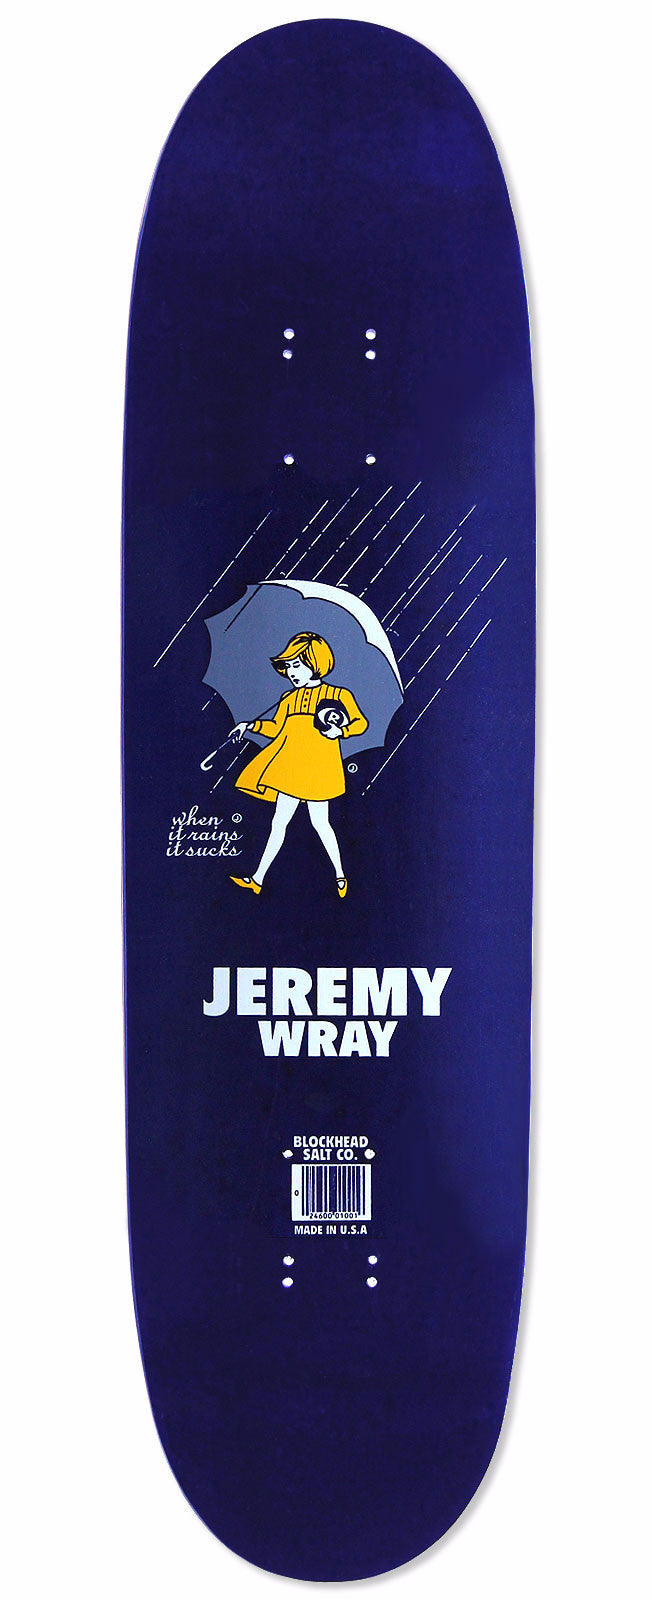 "Jeremy Wray ""when it rains it sucks"" Signed & #'d Reissue,  Pre-order"